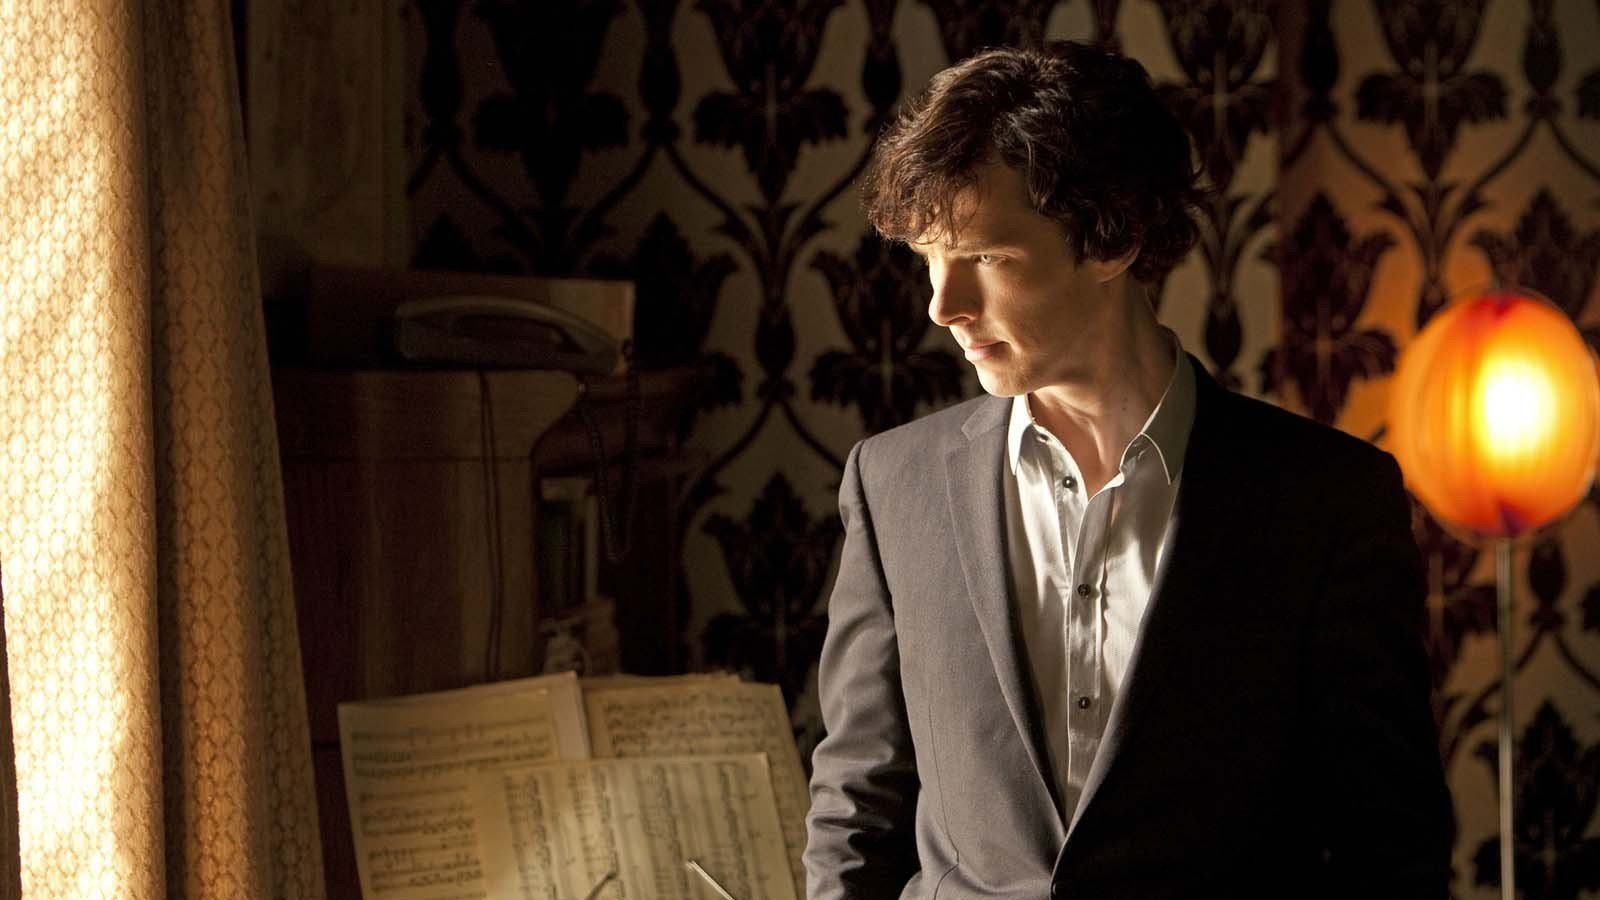 Benedict Cumberbatch Wallpaper Hd: Sherlock, Benedict Cumberbatch HD Wallpapers / Desktop And